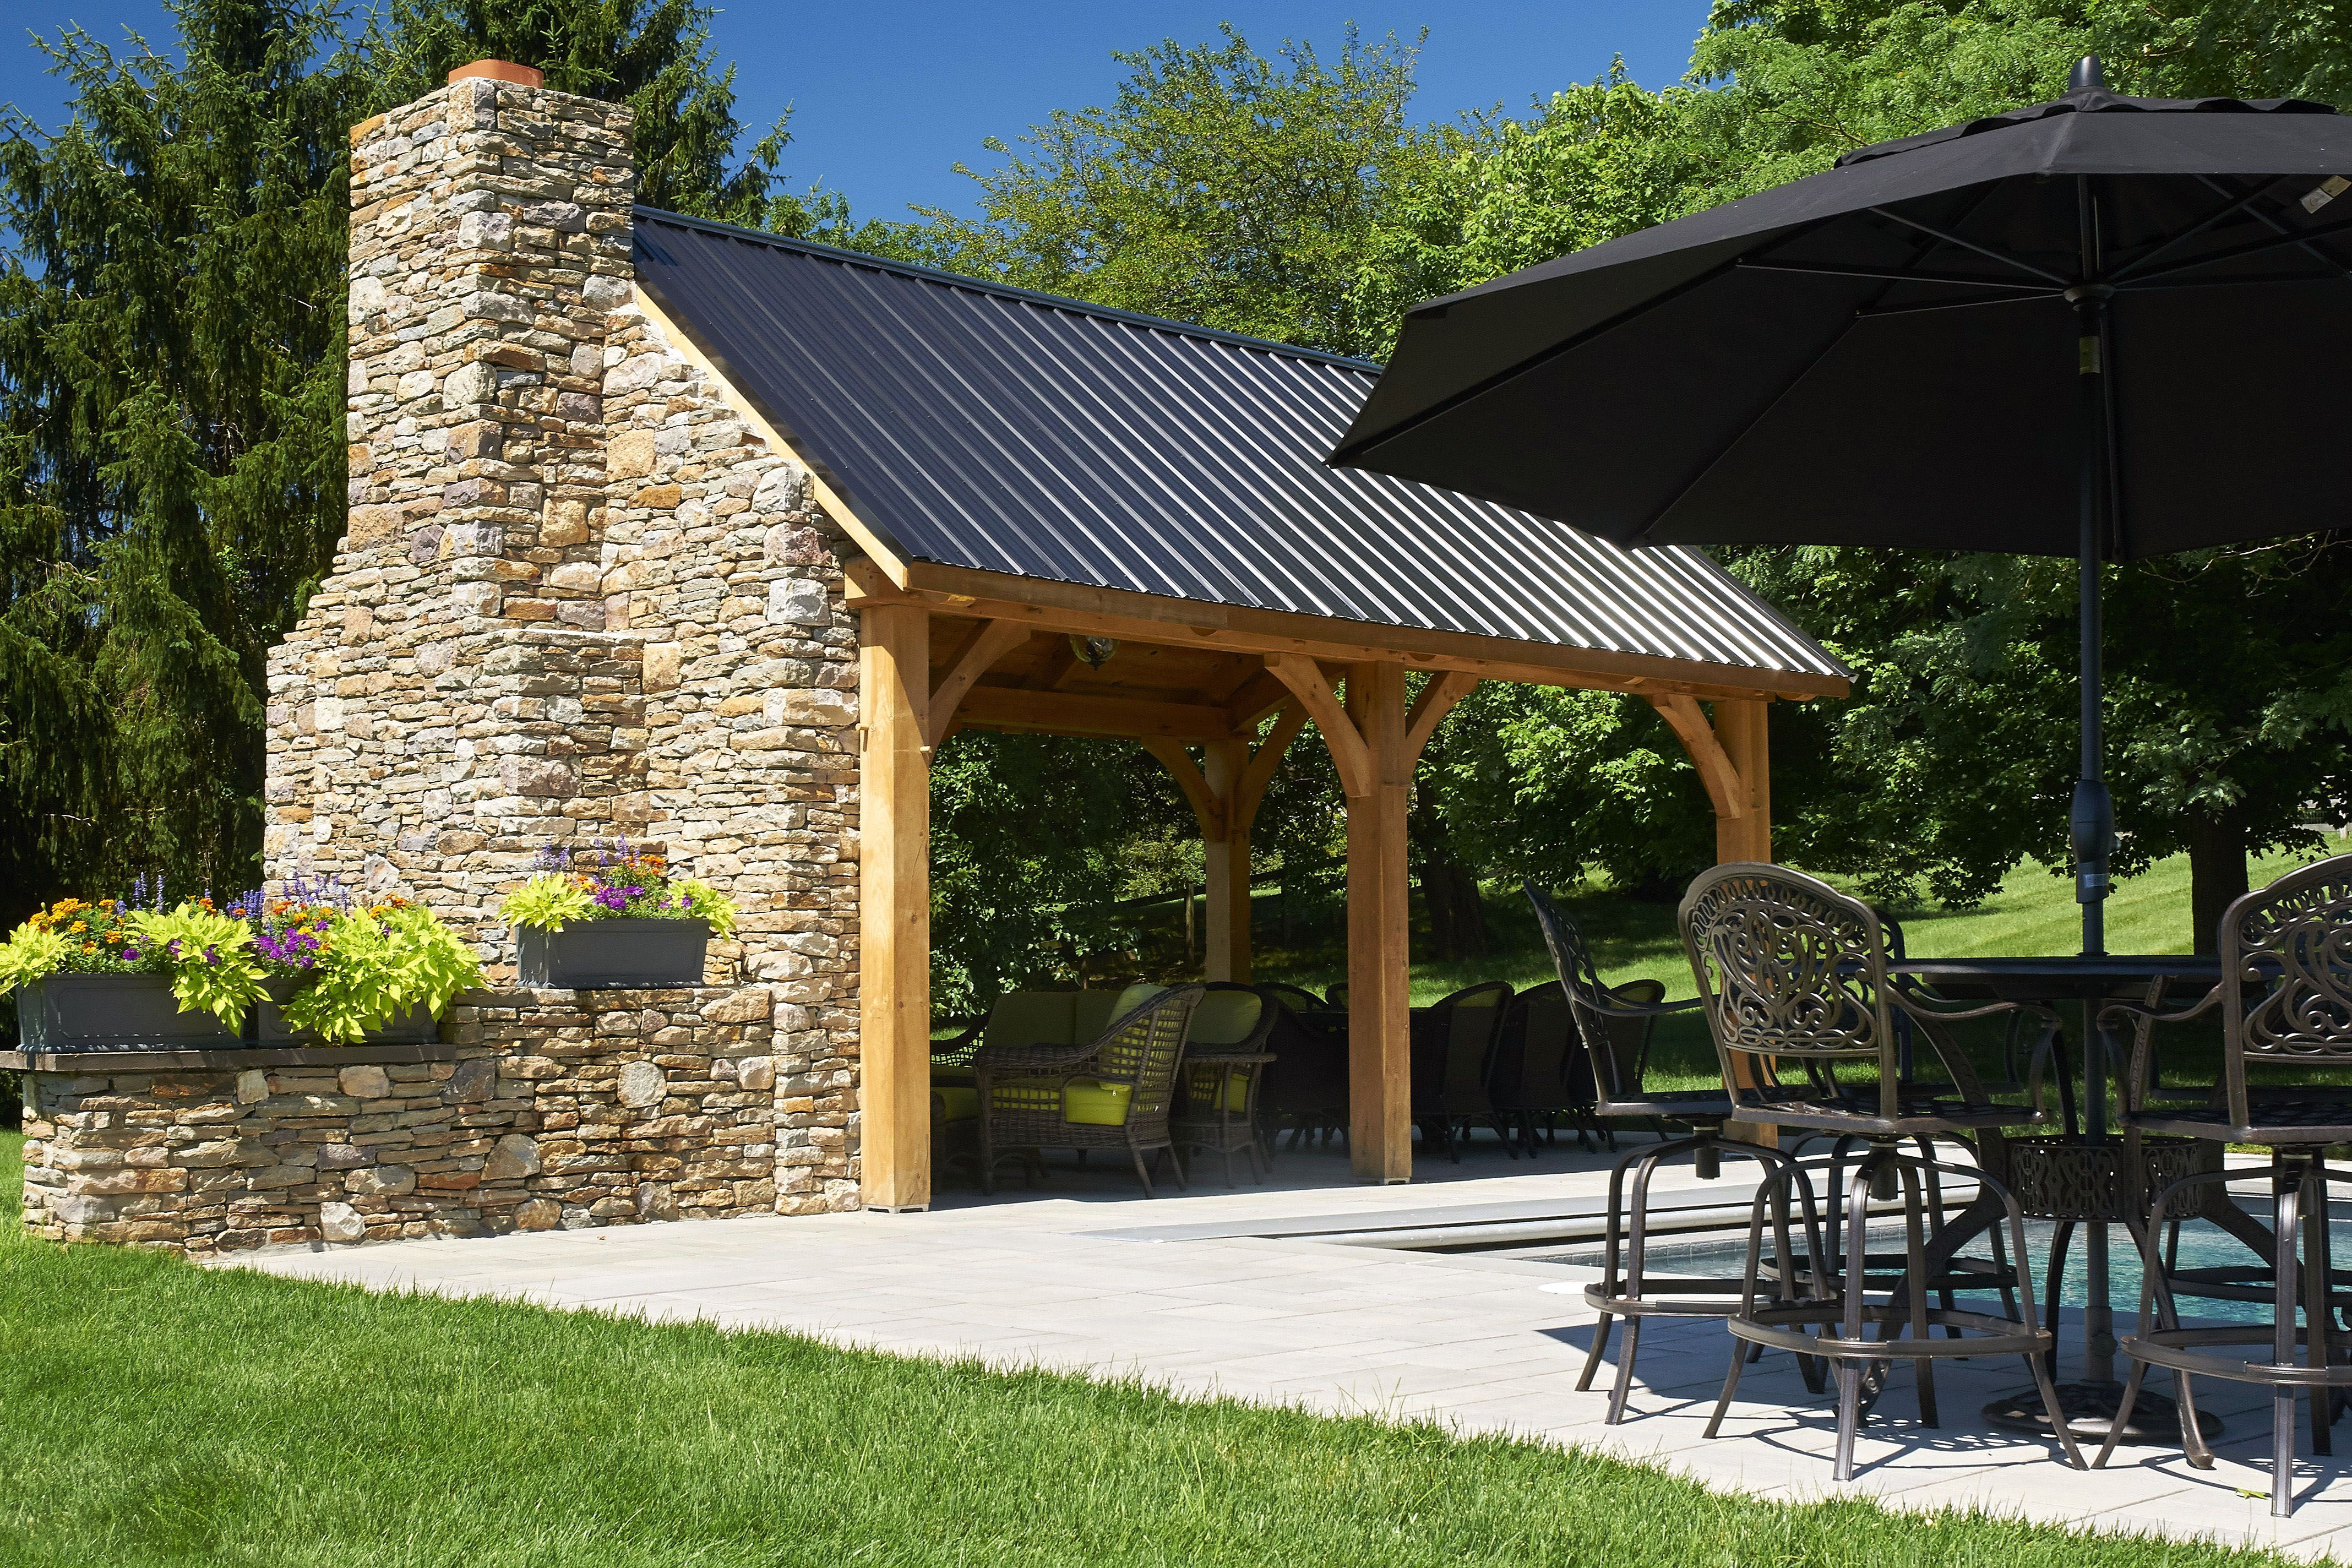 Best Pergola And Pavilion Design Ideas For Your Backyard With Images Rustic Outdoor Kitchens Backyard Pavilion Outdoor Kitchen Design